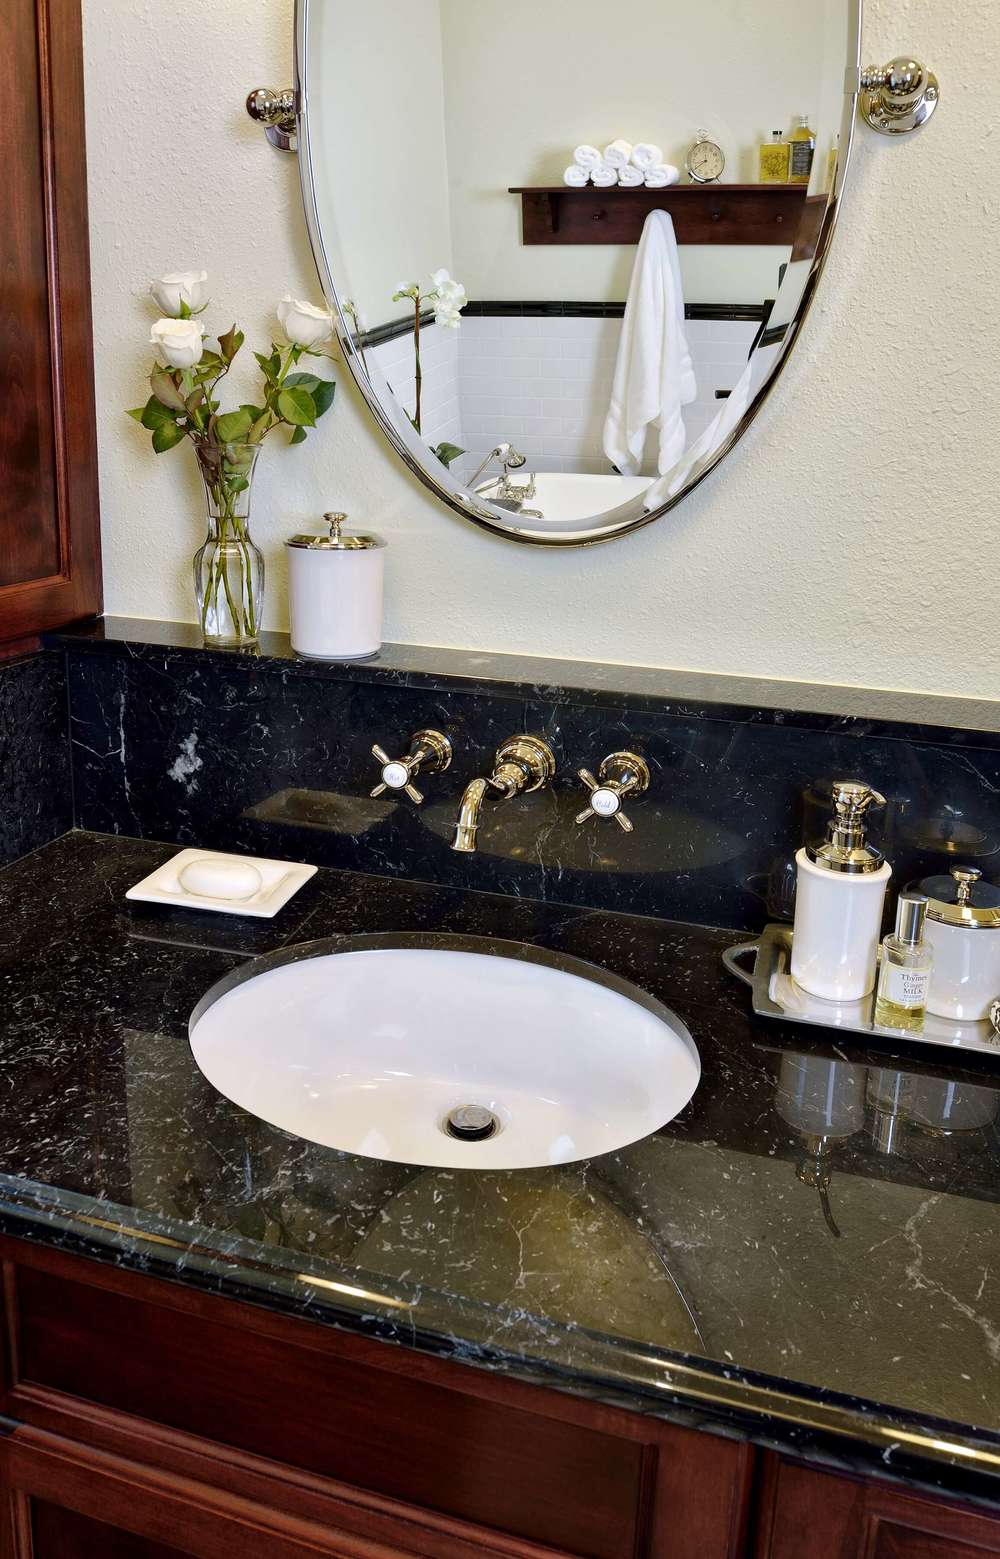 wall mount faucet with ledge at bathroom sink in bathroom remodel, Designer: Carla Aston